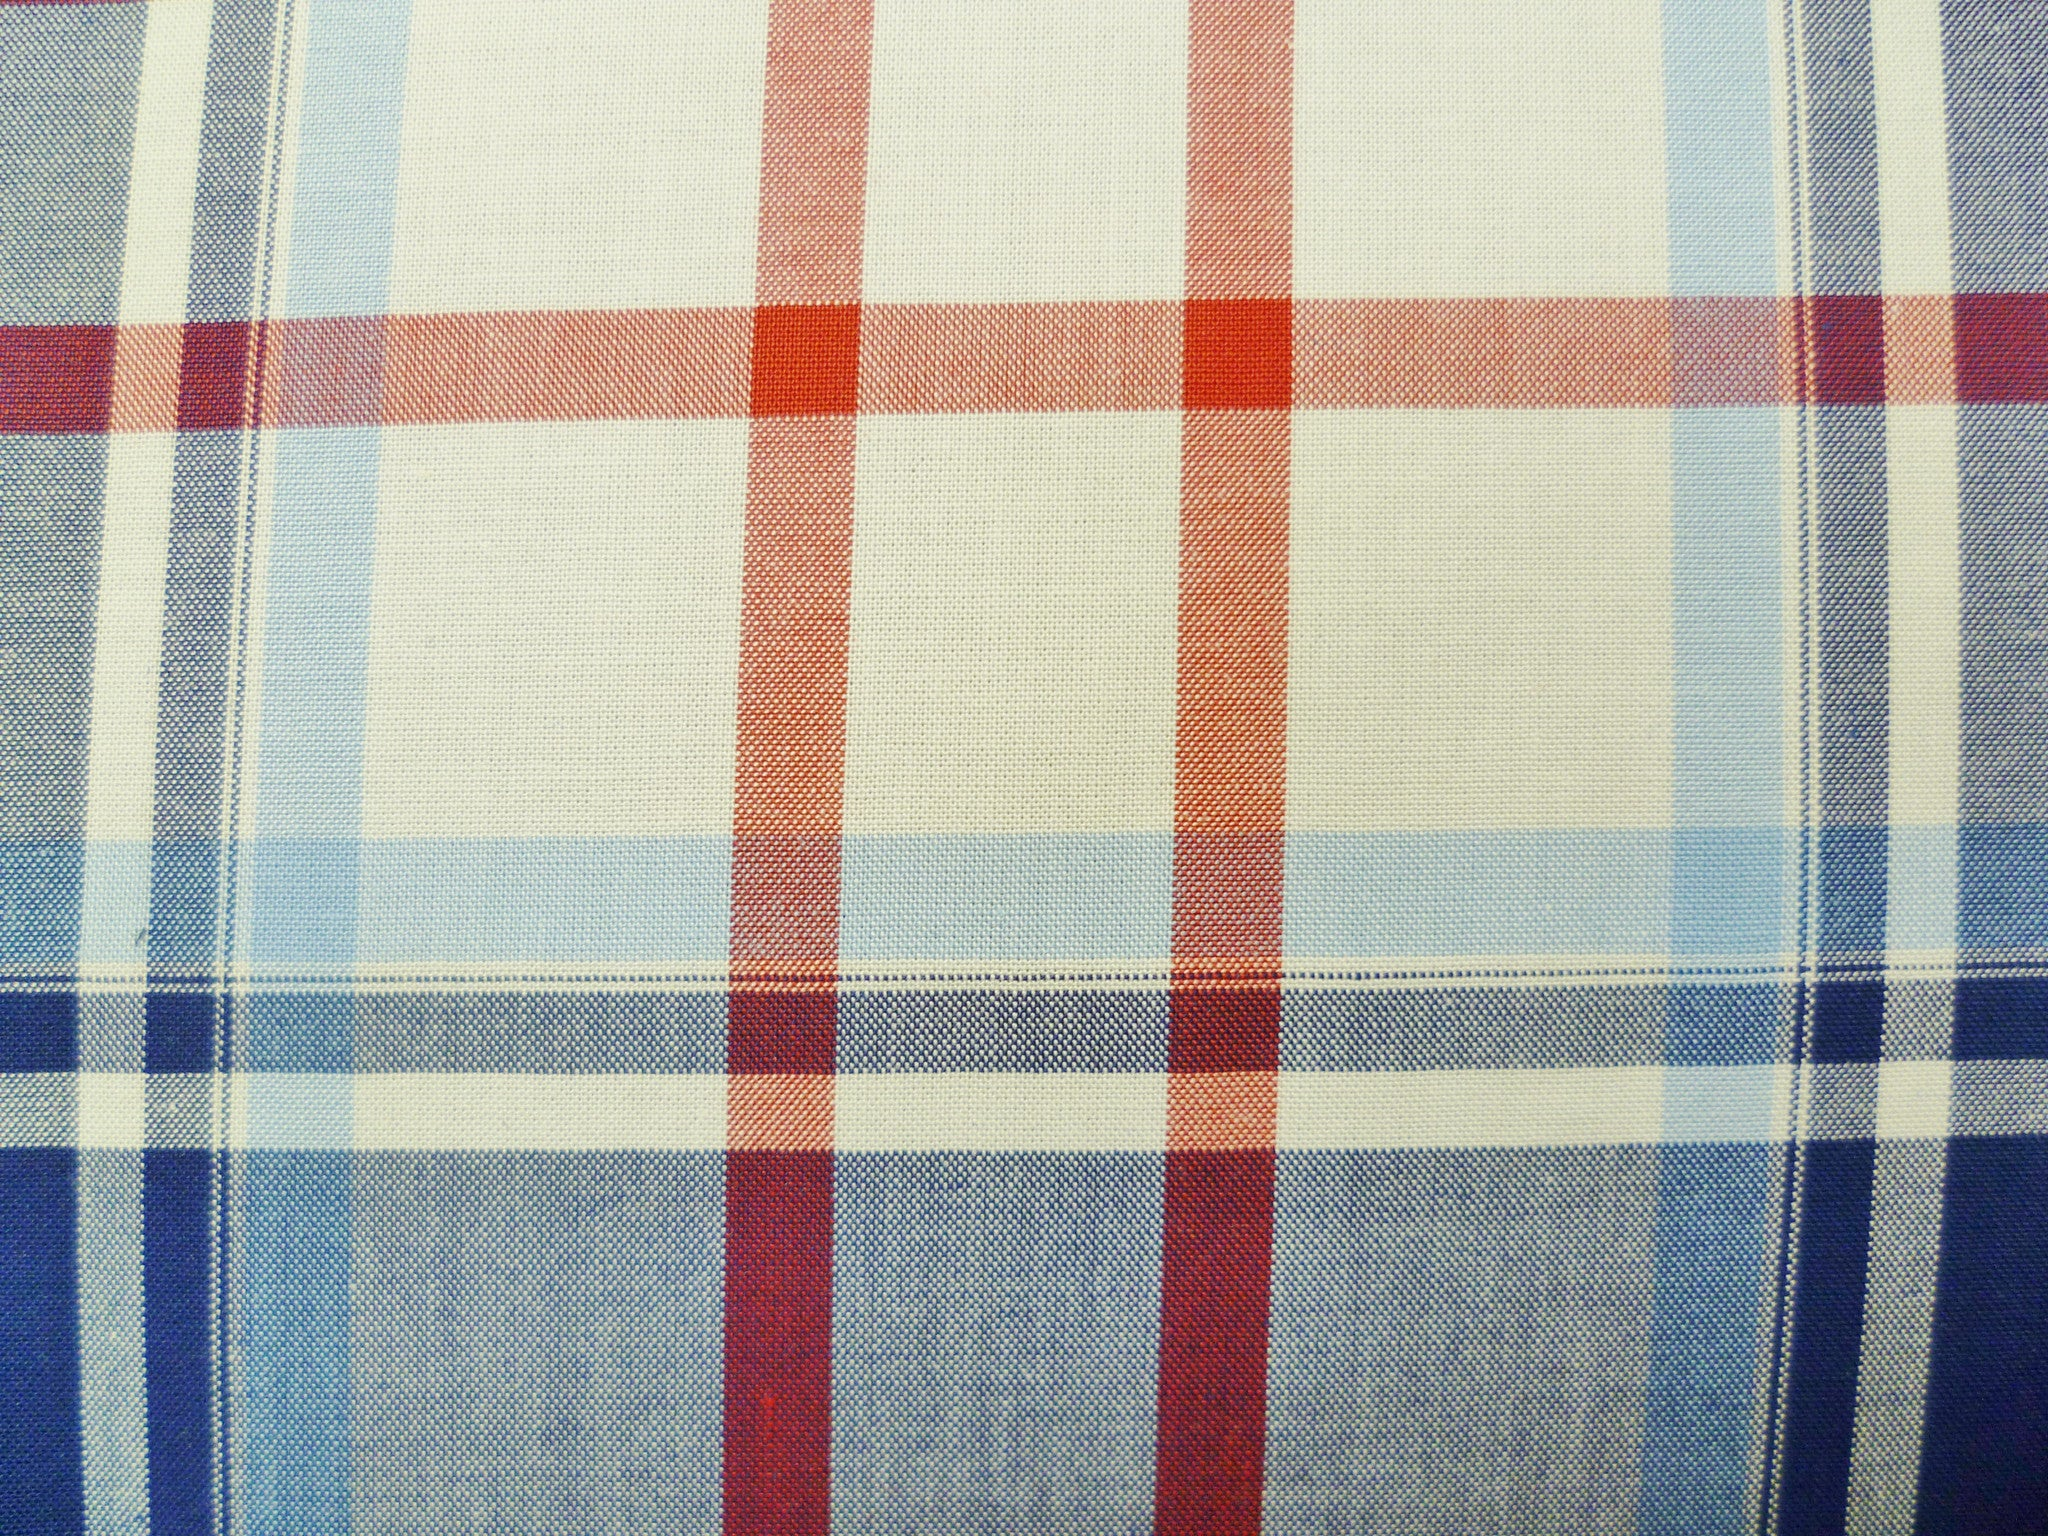 Navy, Baby Blue, Crimson Red, White and Ocean Blue Tartan Checked Cotton